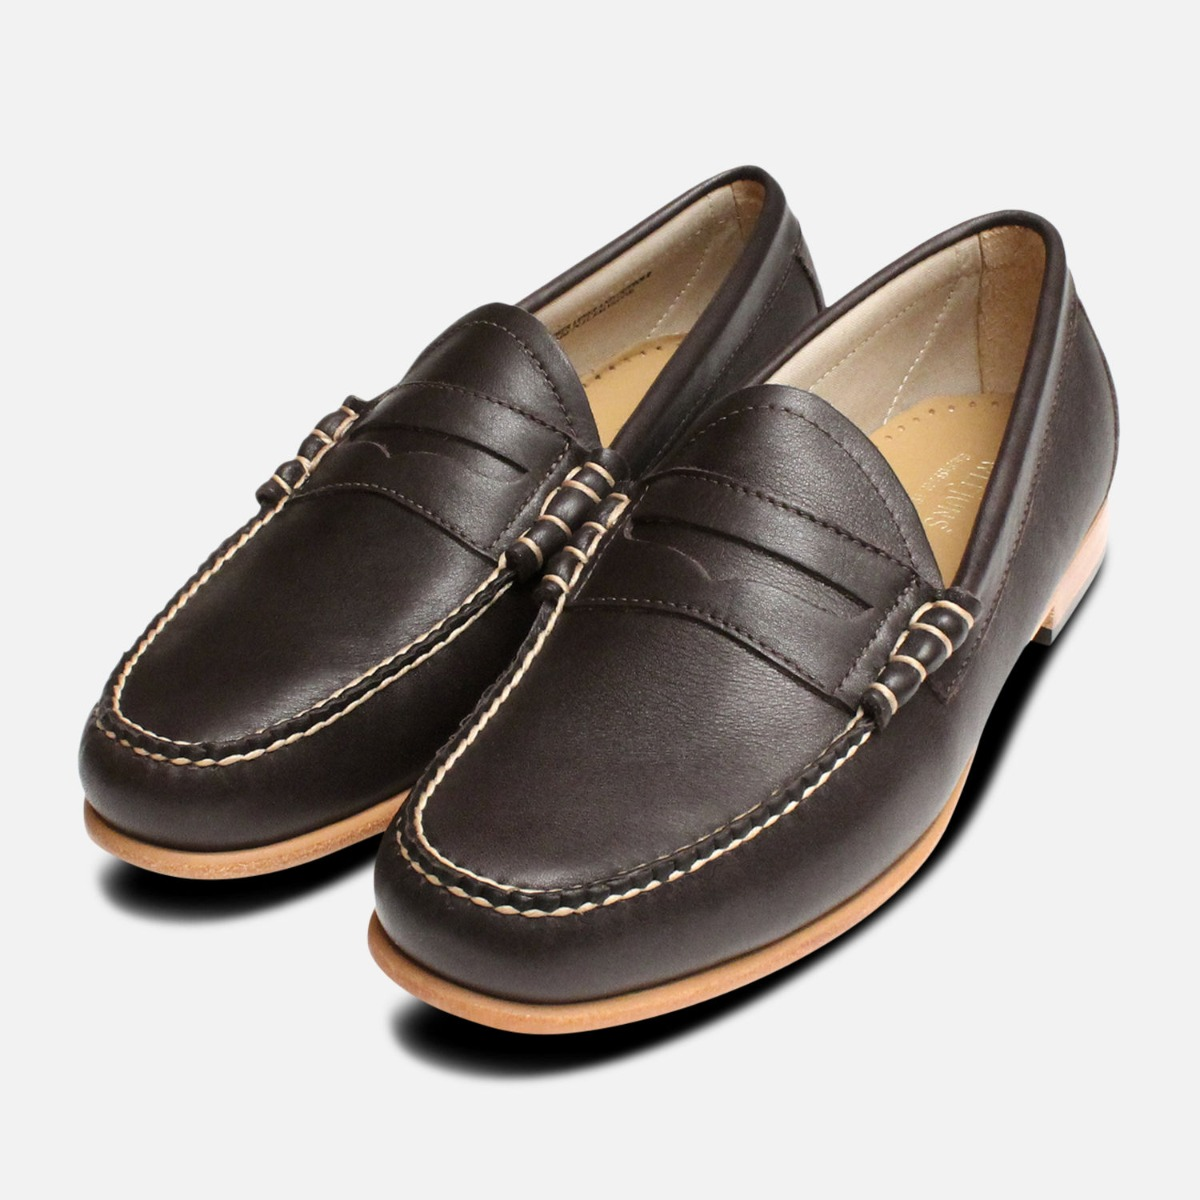 d3288af0ef4d Brown Leather Larson Loafers by GH Bass Weejuns. Handcrafted leather penny  loafers in dark brown leather with natural leather sole.